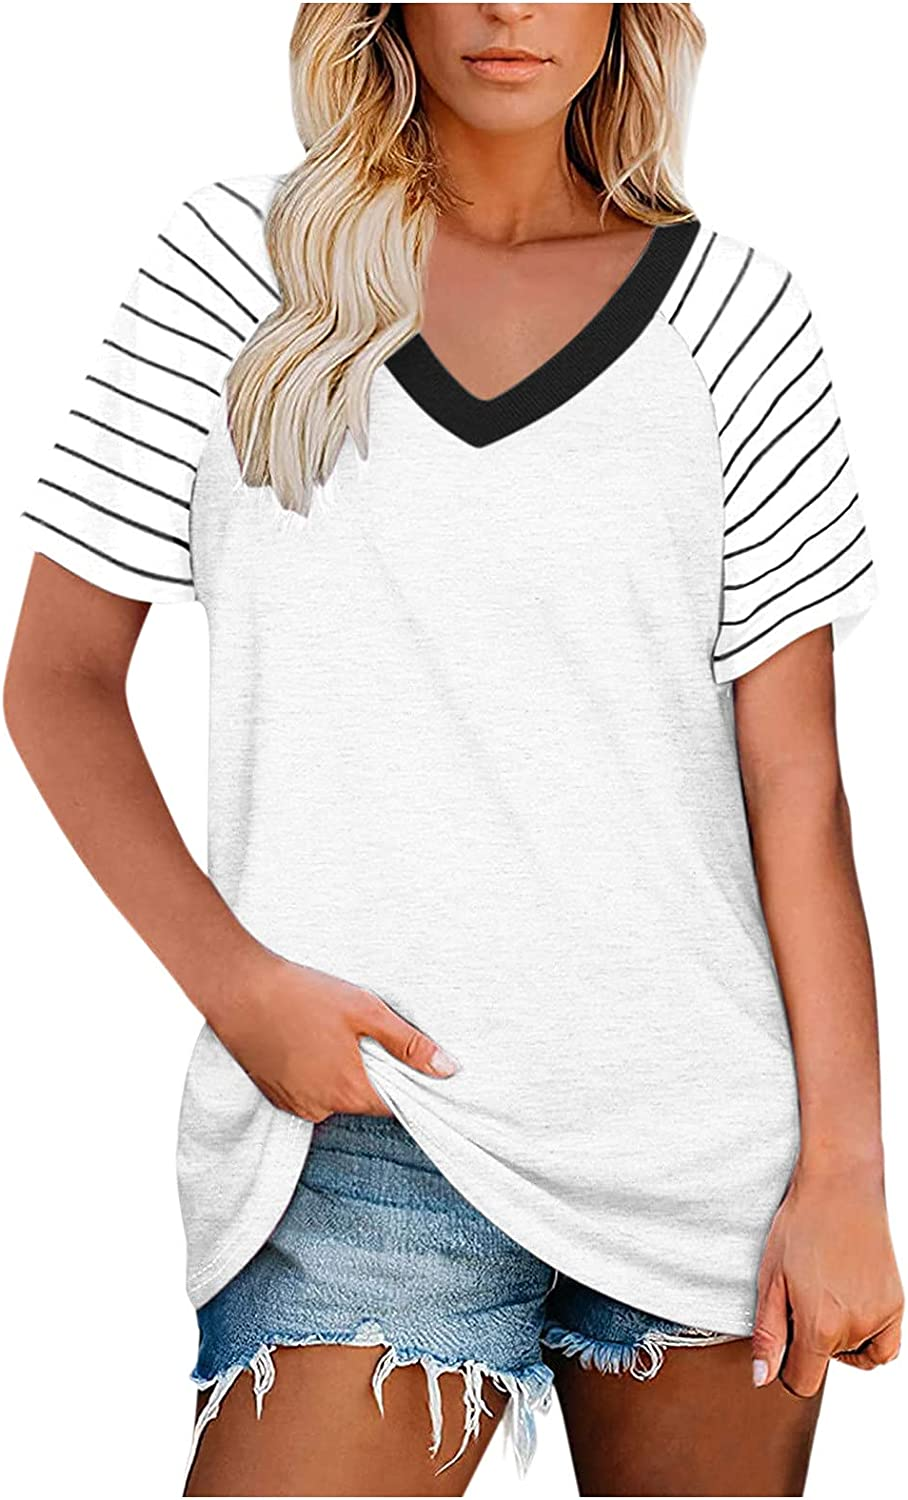 XINXX Summer Tops for Women, Womens Fashion Stripe V Neck Tank Top Short Sleeves T Shirts Casual Loose Tunic Blouses